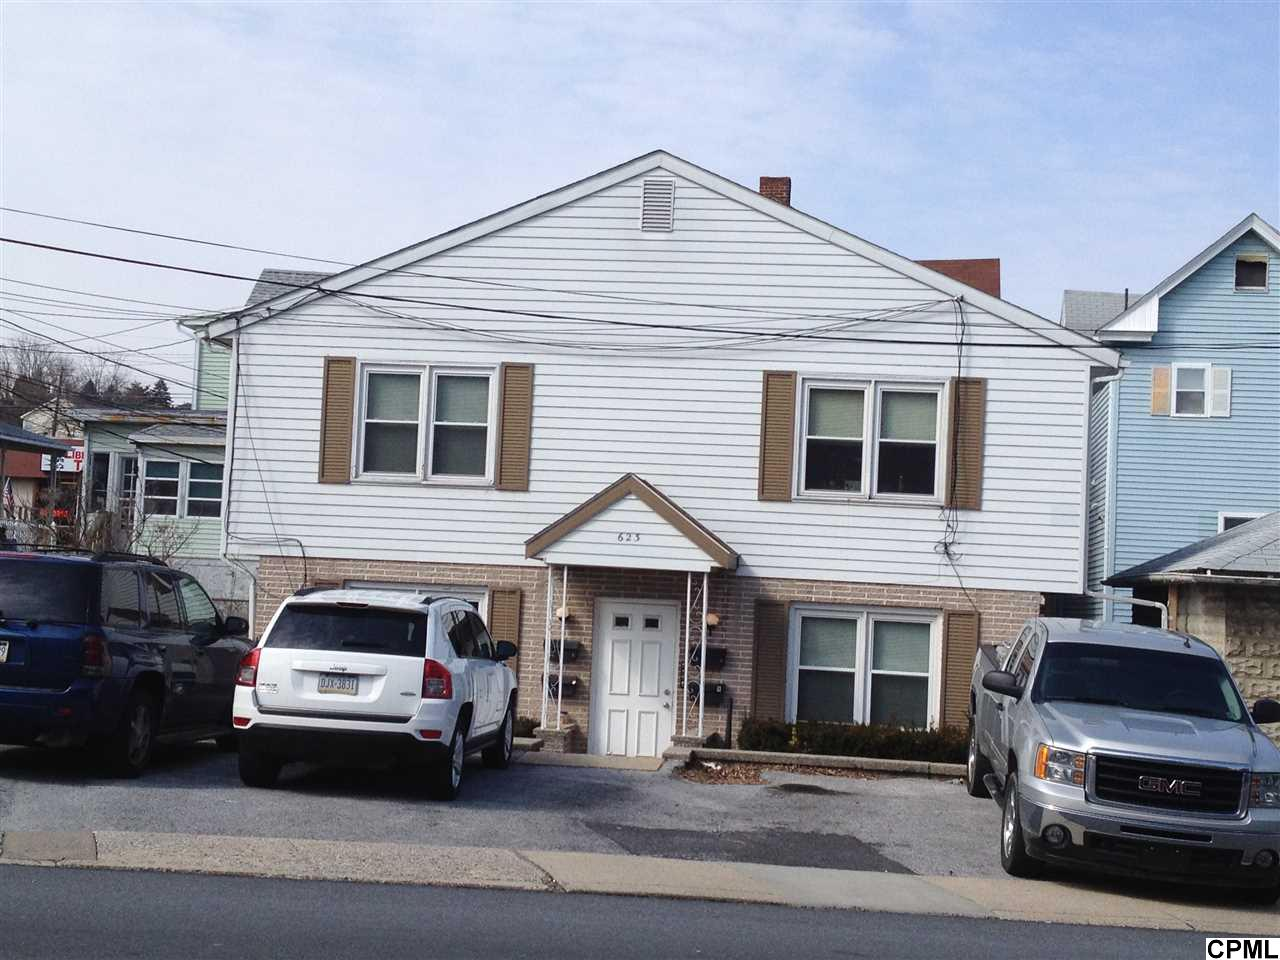 Rental Homes for Rent, ListingId:32316951, location: 623 State Street Lemoyne 17043